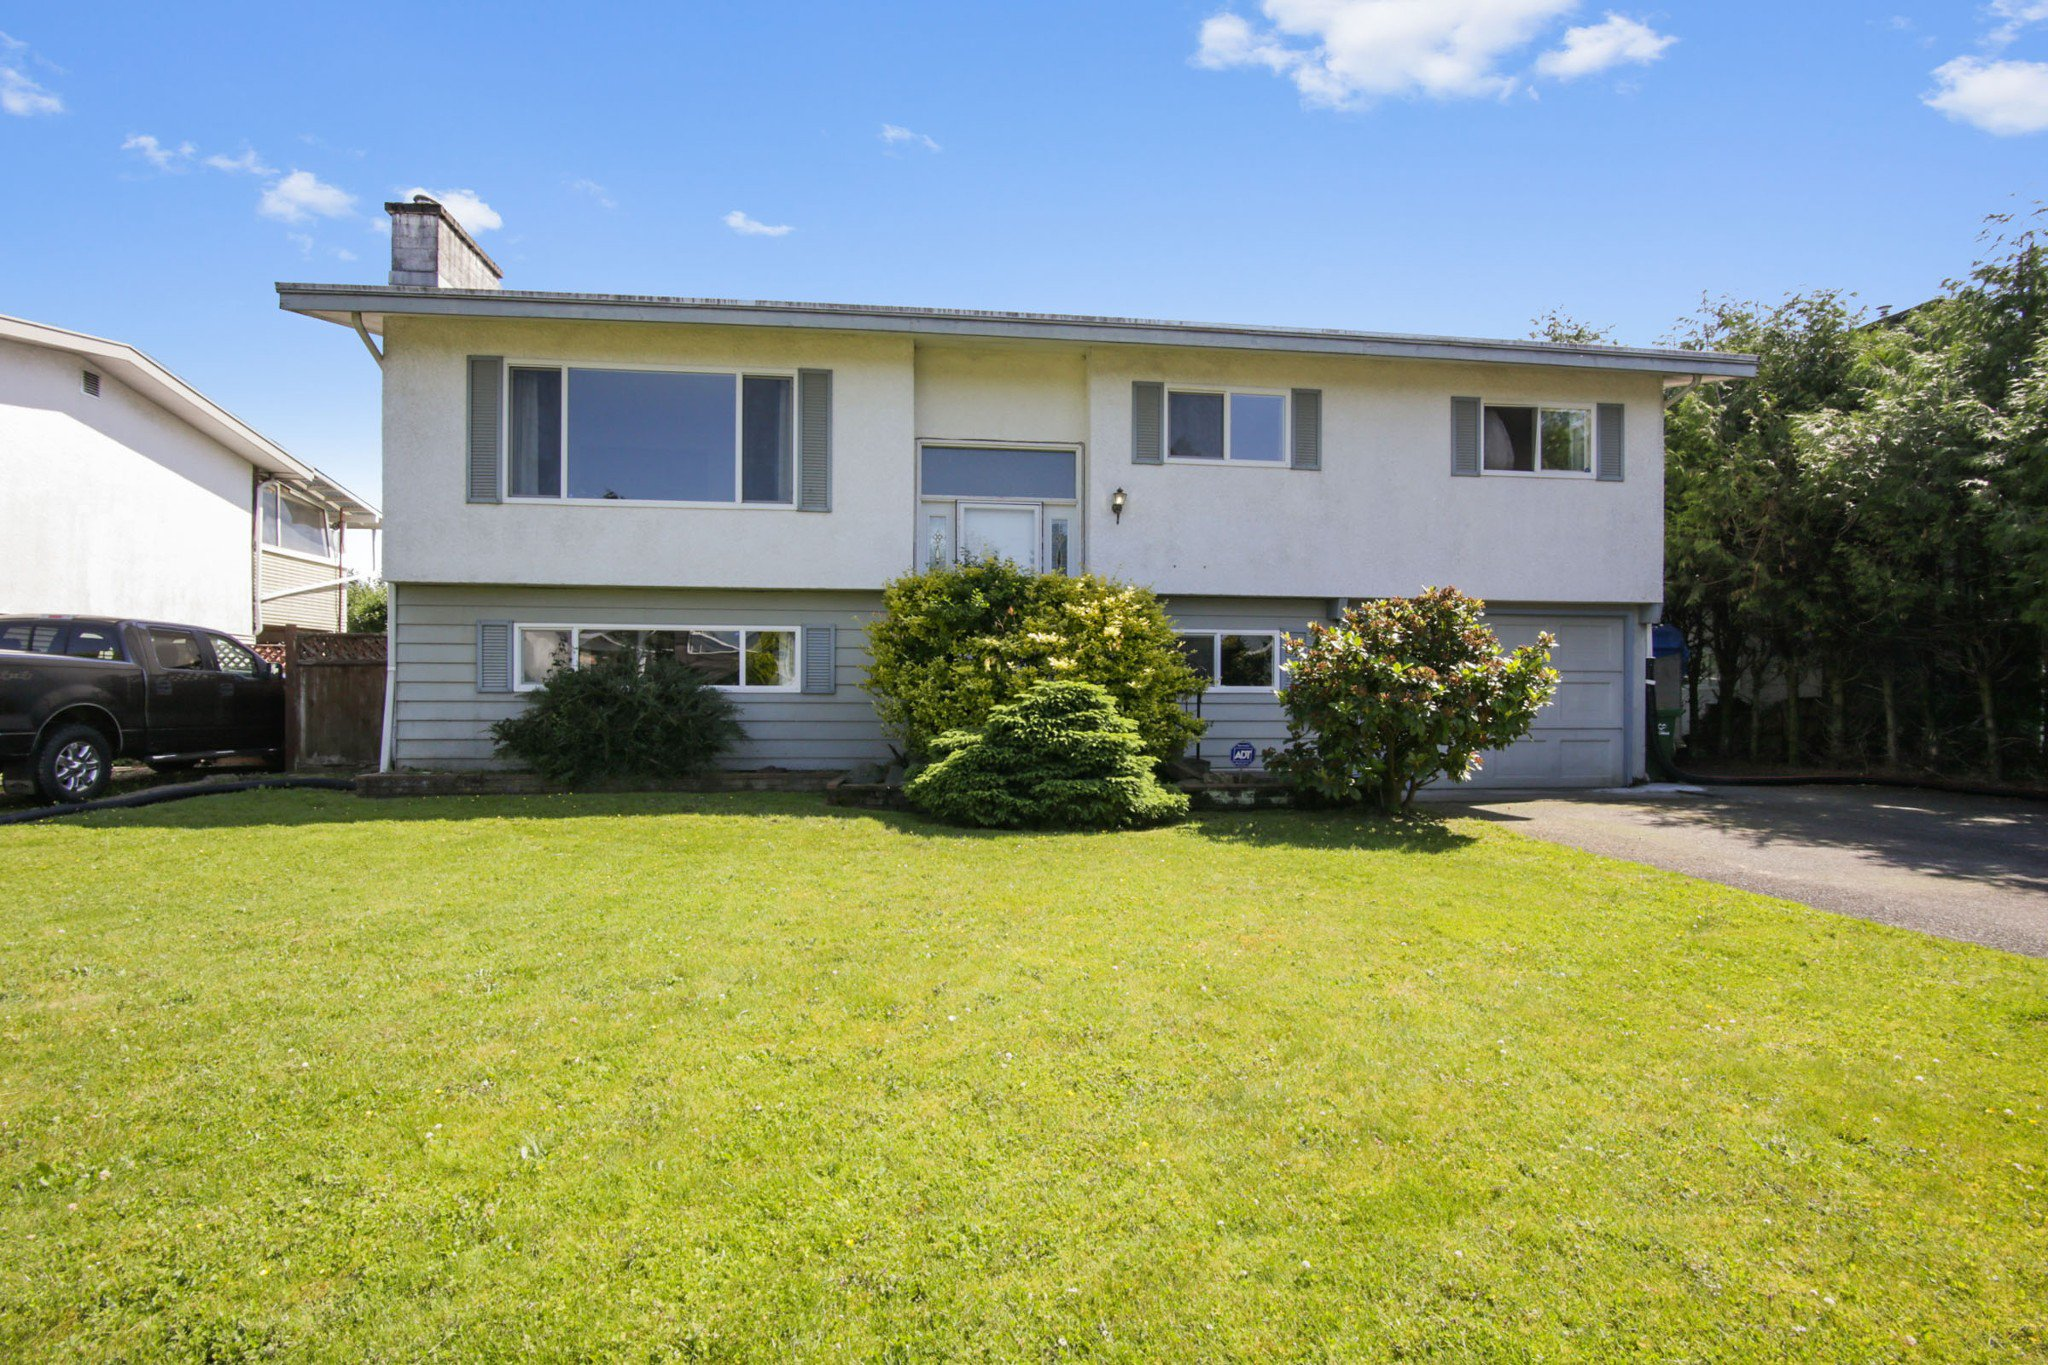 Main Photo: 46616 ARBUTUS Avenue in Chilliwack: Chilliwack E Young-Yale House for sale : MLS®# R2466242